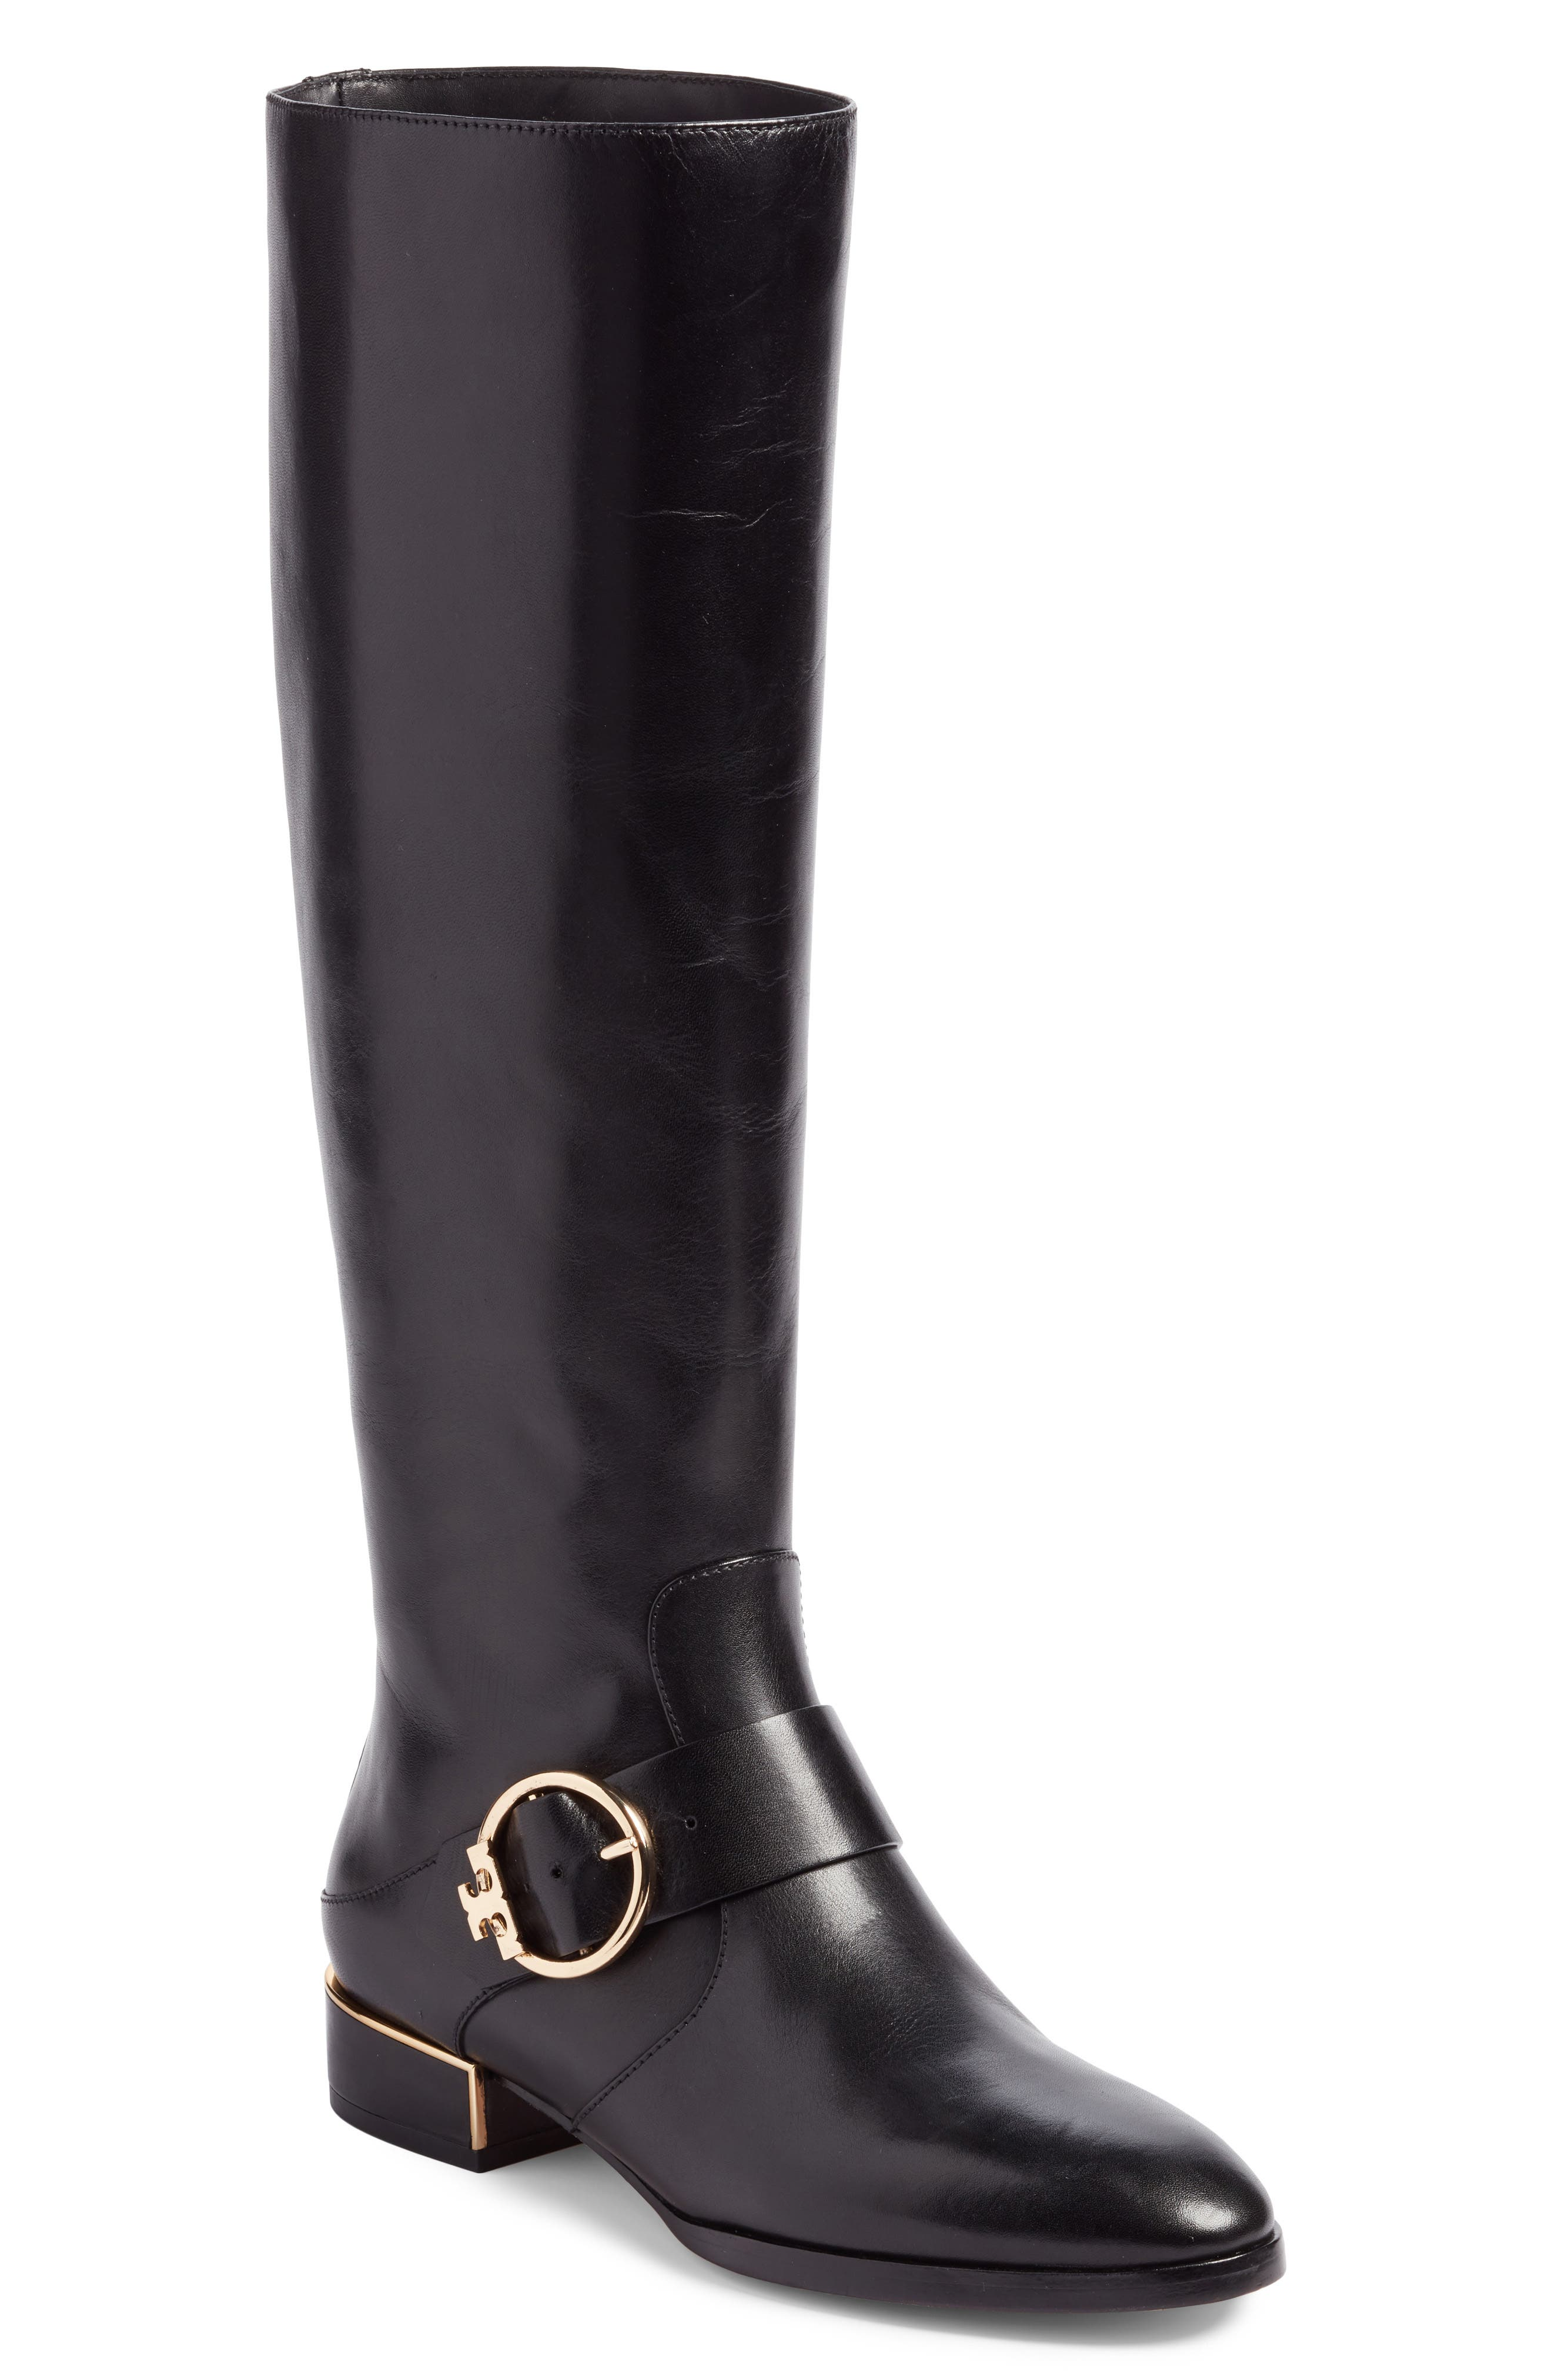 Main Image - Tory Burch Sofia Buckled Riding Boot (Women) (Regular & Wide Calf)